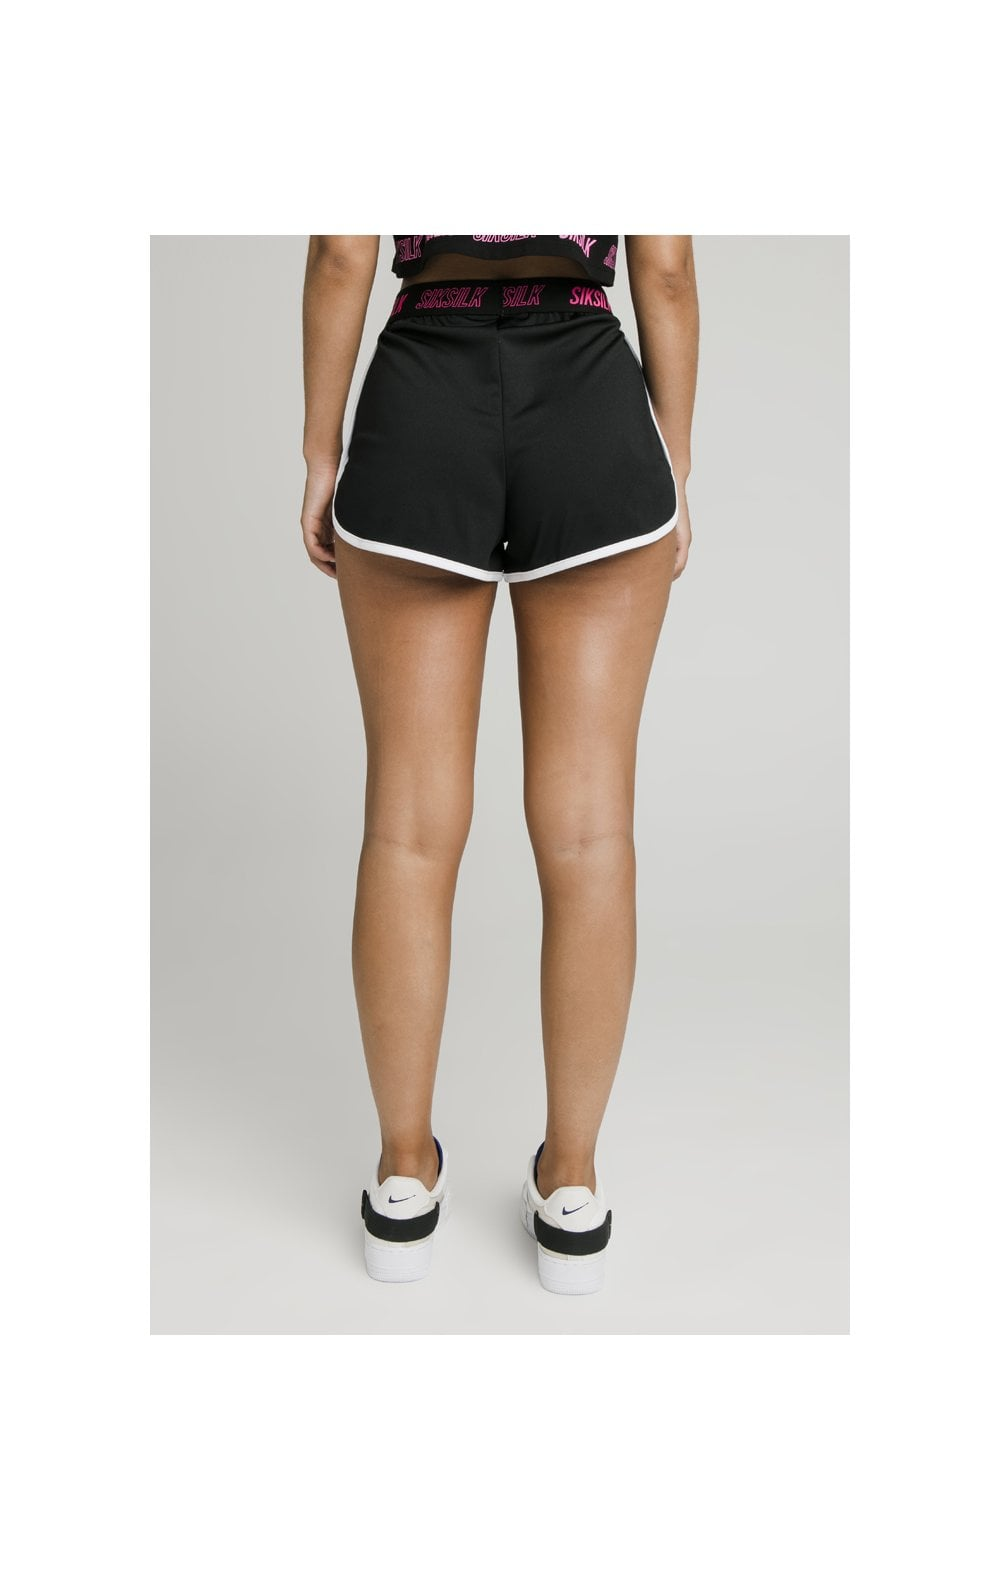 SikSilk Tape Runner Shorts - Black (3)